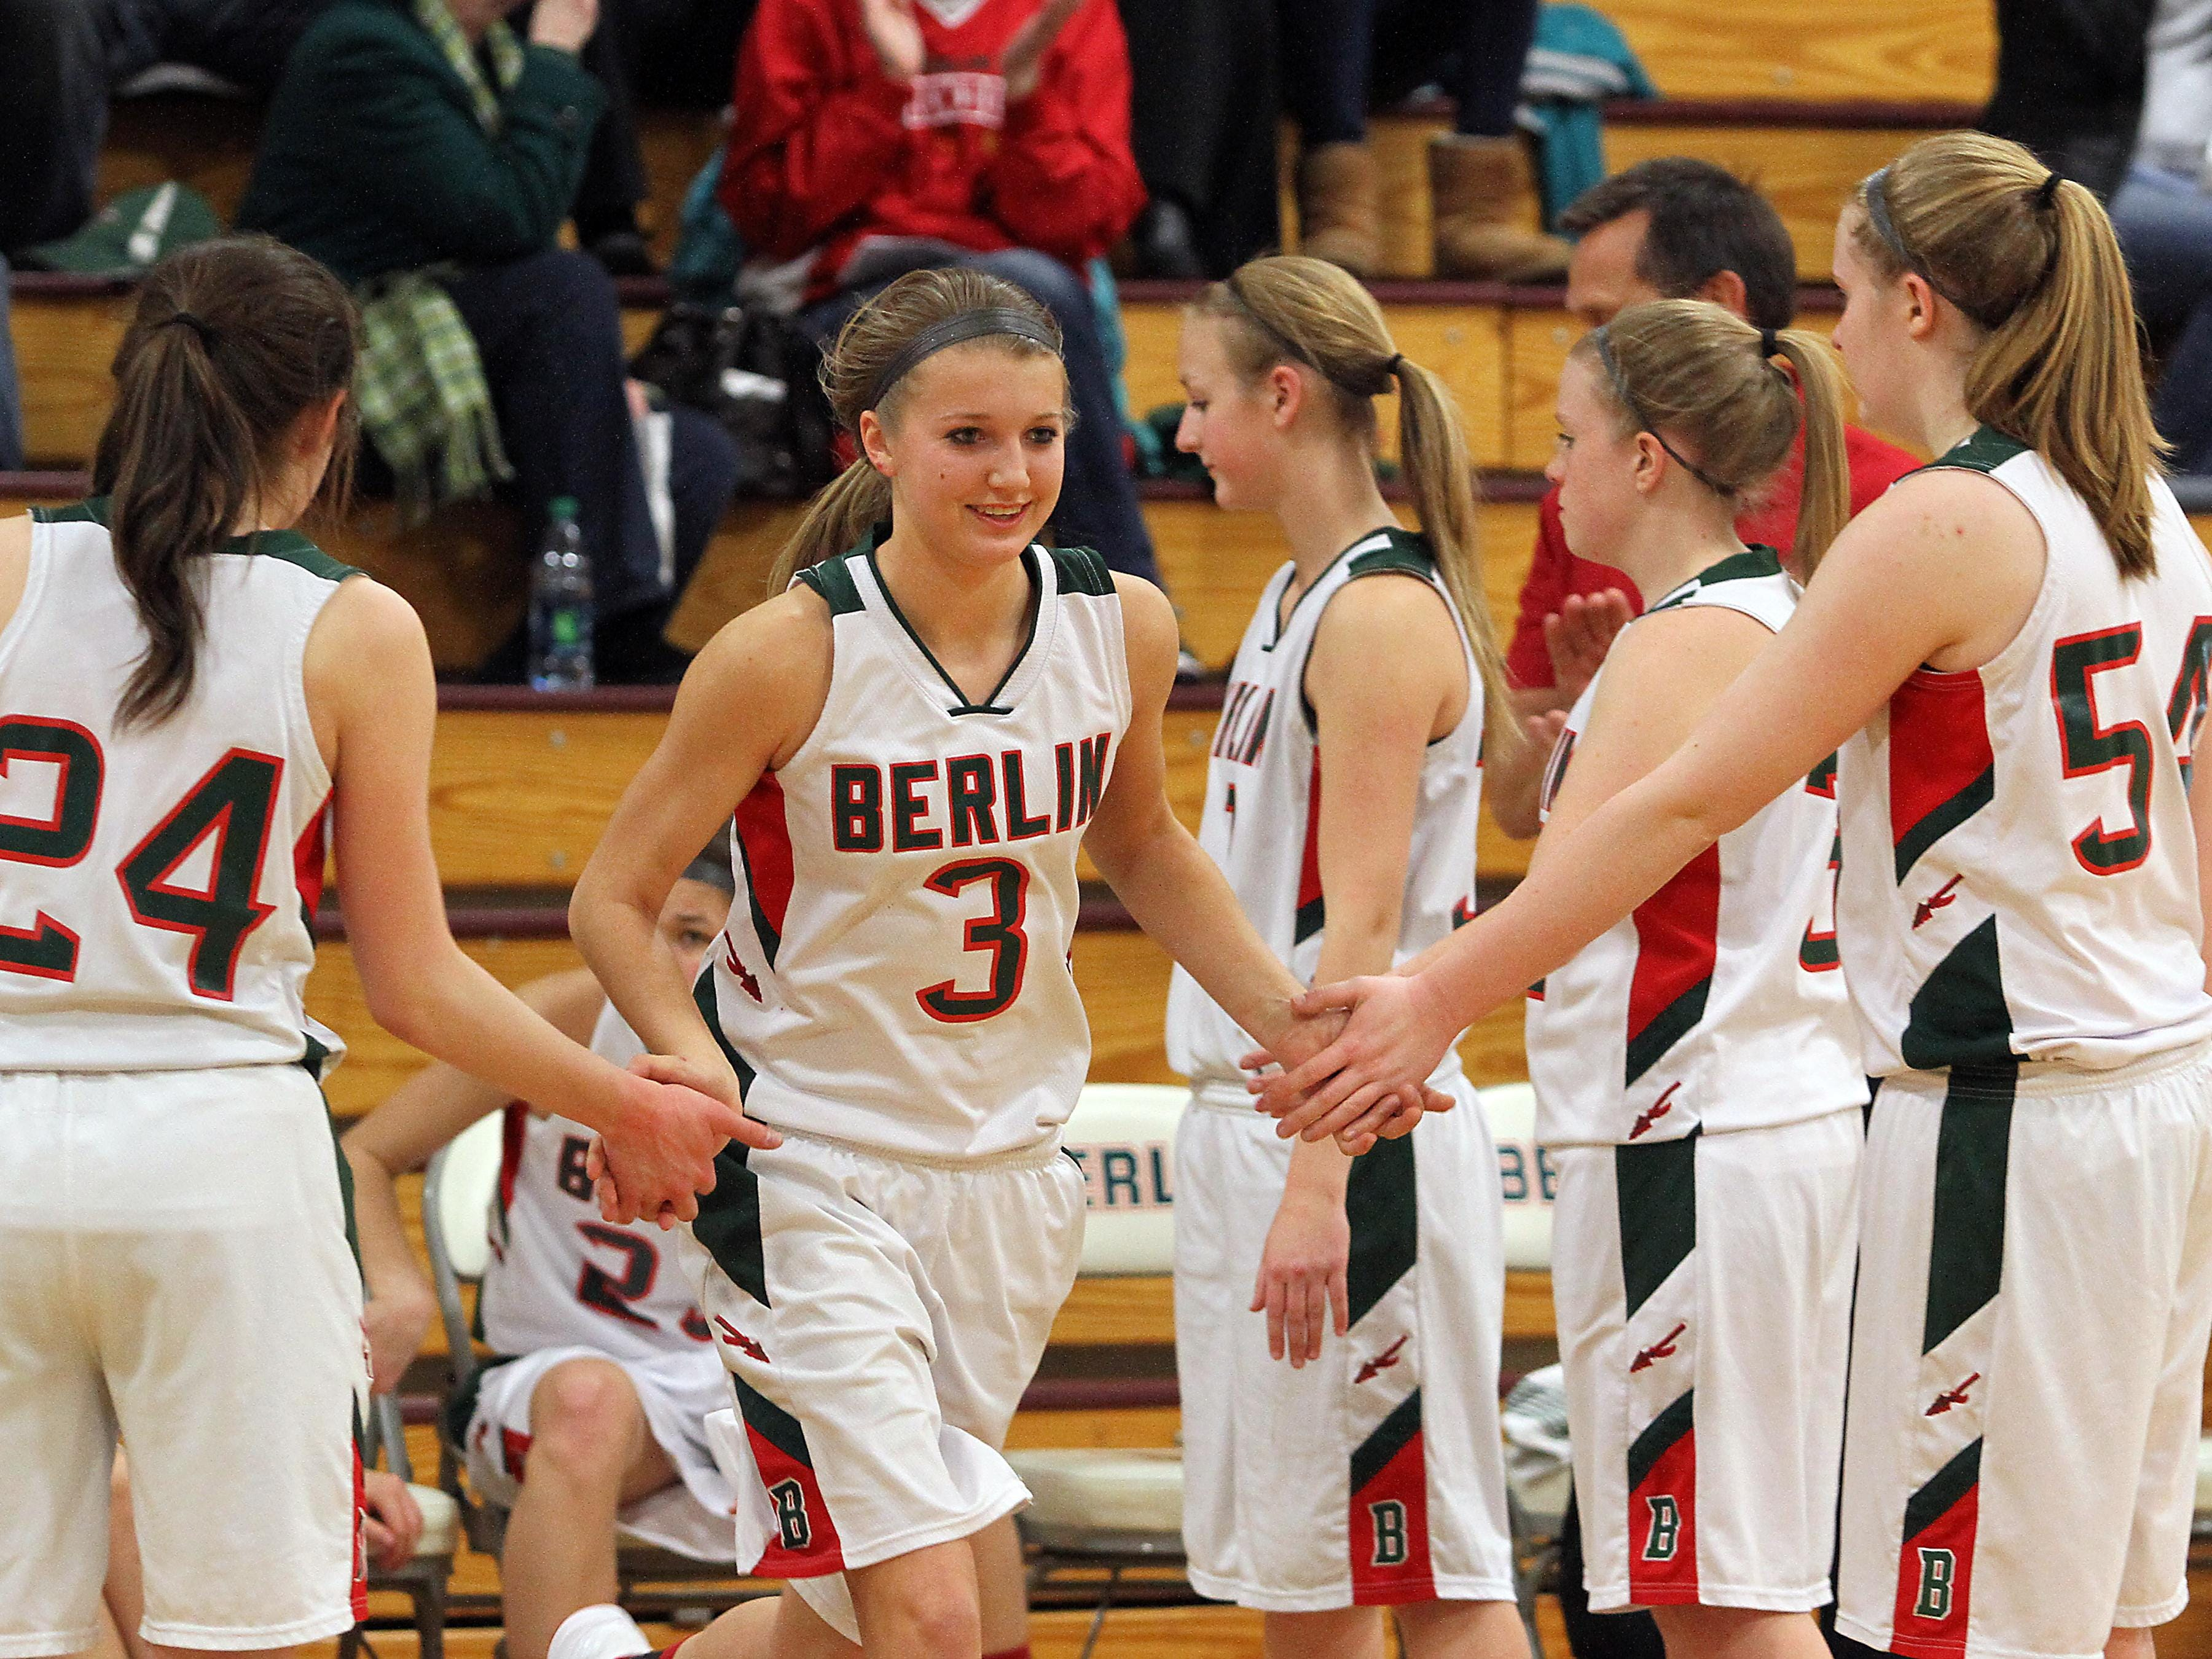 Berlin's Julia Silloway (3) is only 12 points away from reaching 1,000 career points.